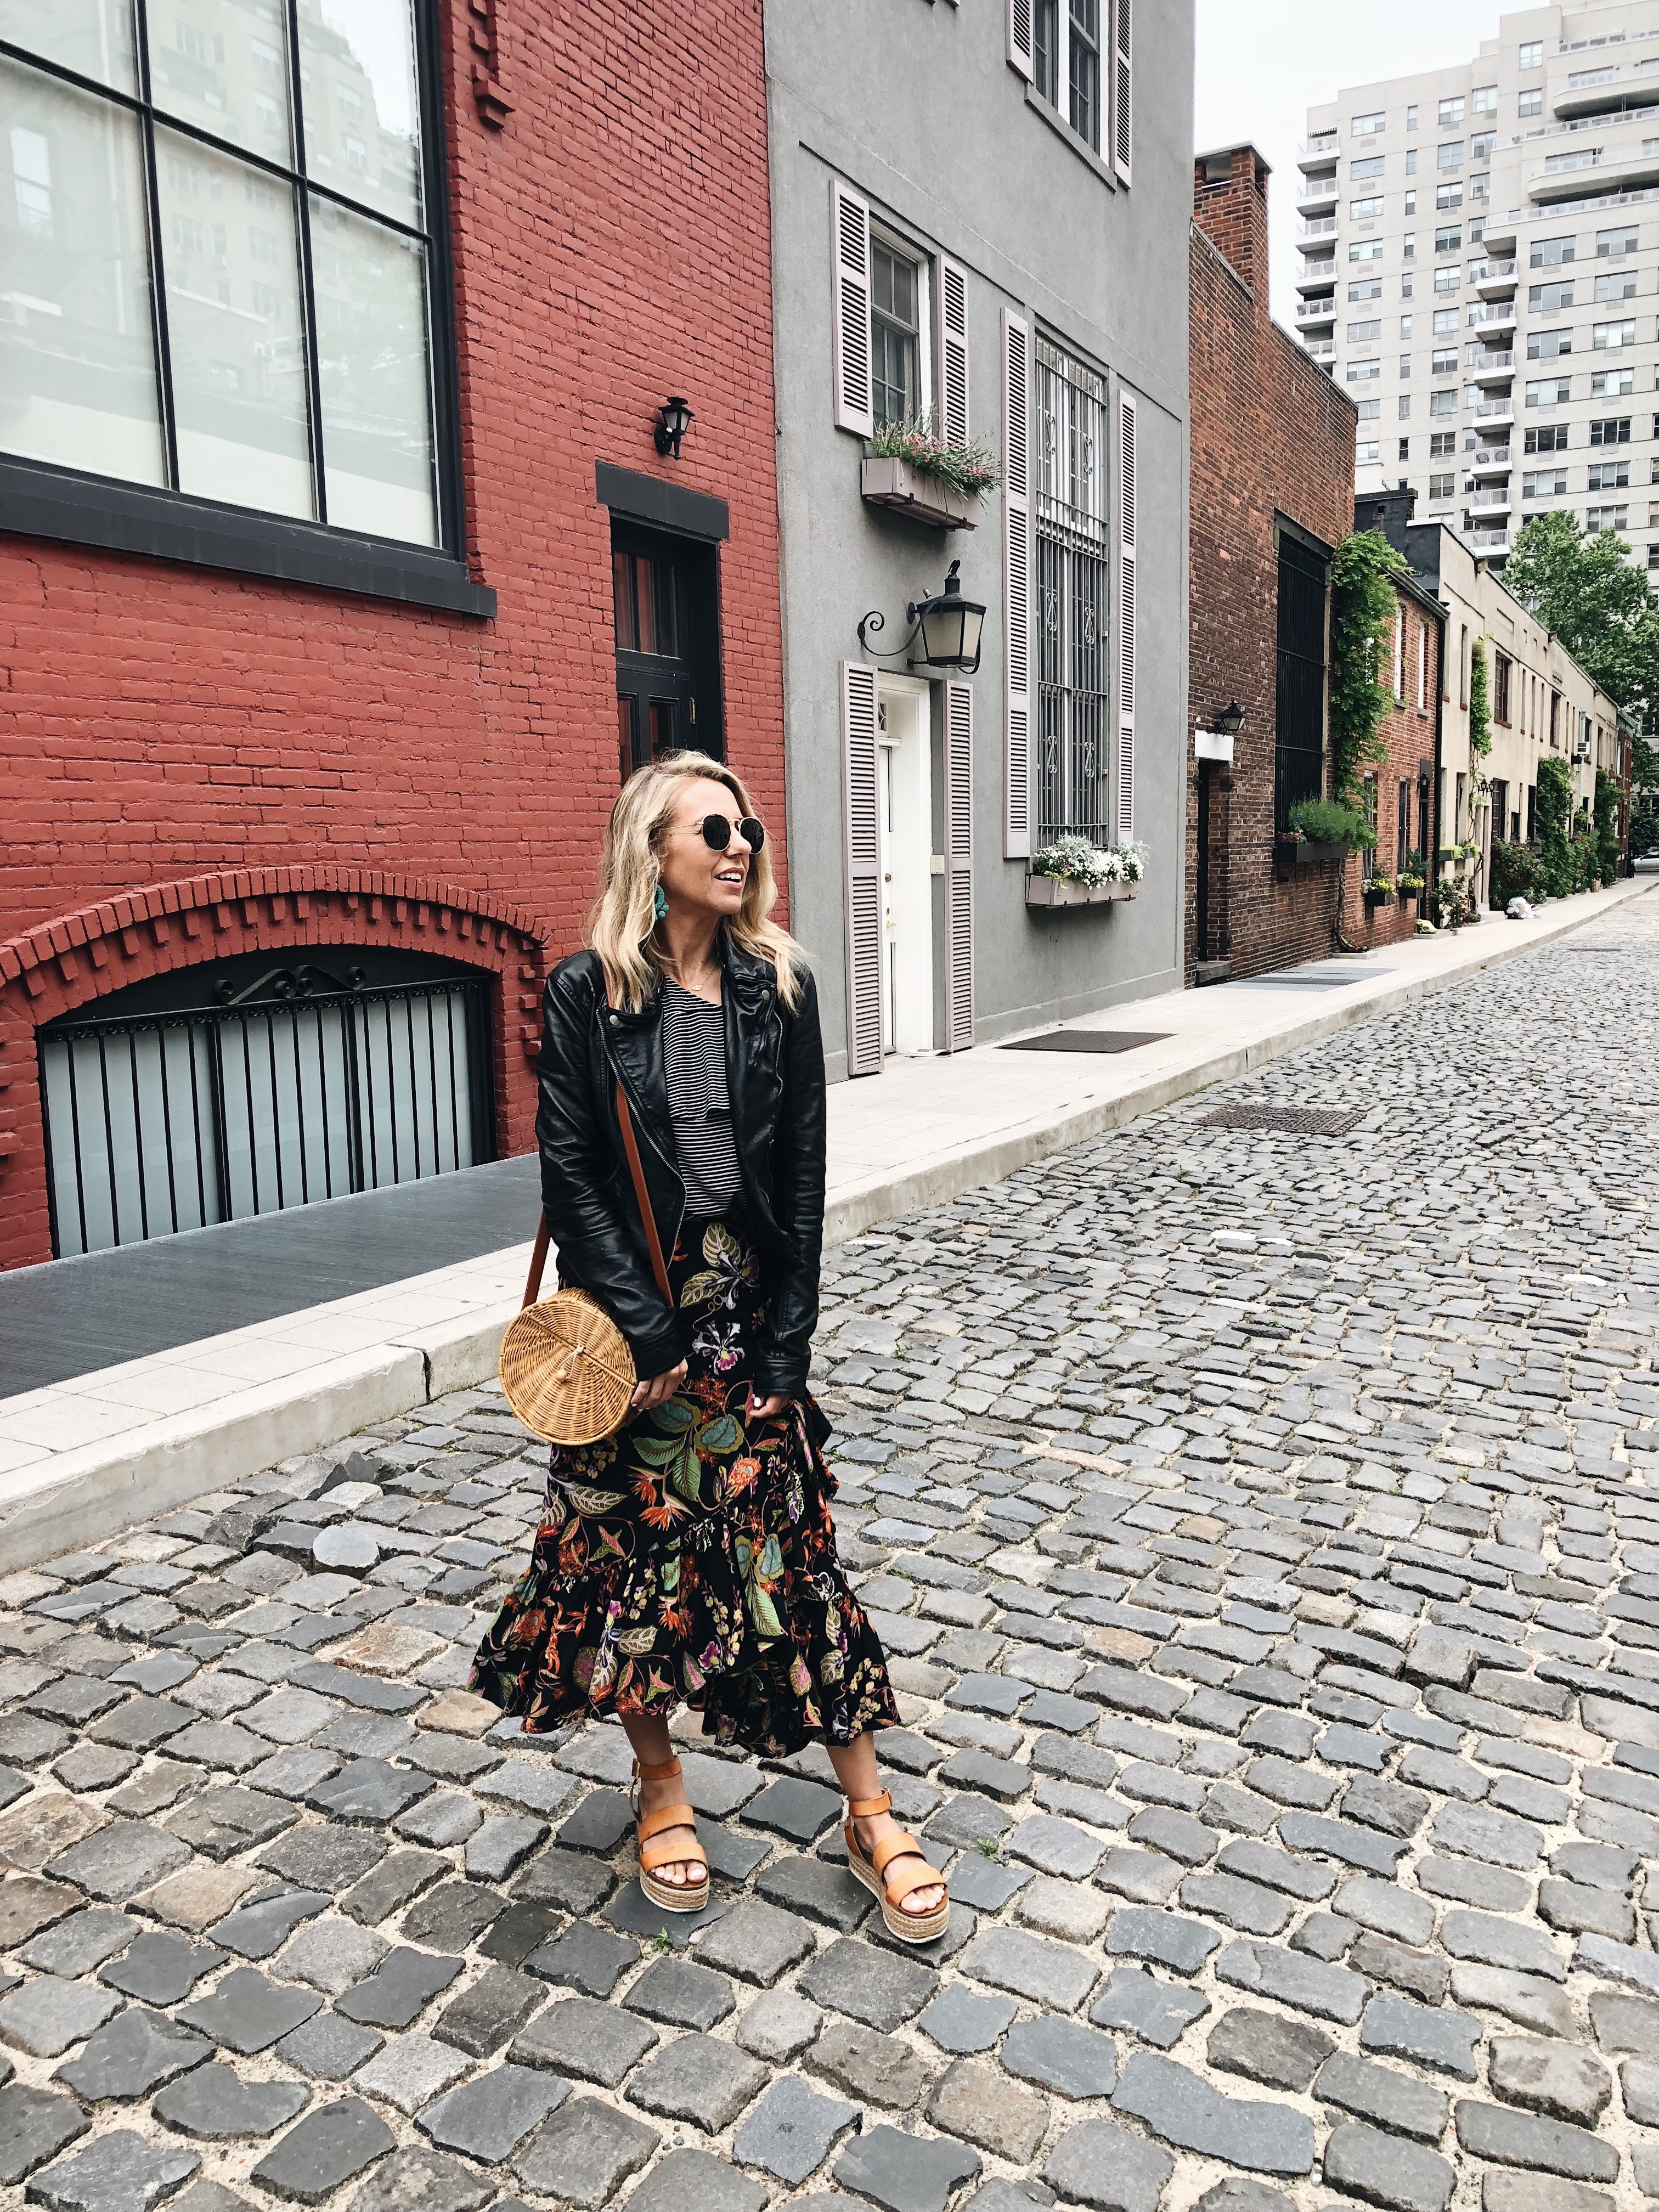 ADVENTURES IN NEW YORK- Jaclyn De Leon Style + ruffle floral midi skirt + striped top + faux leather jacket + straw crossbody handbag +platform espadrille sandals + casual street style + what to wear this spring + h&m style